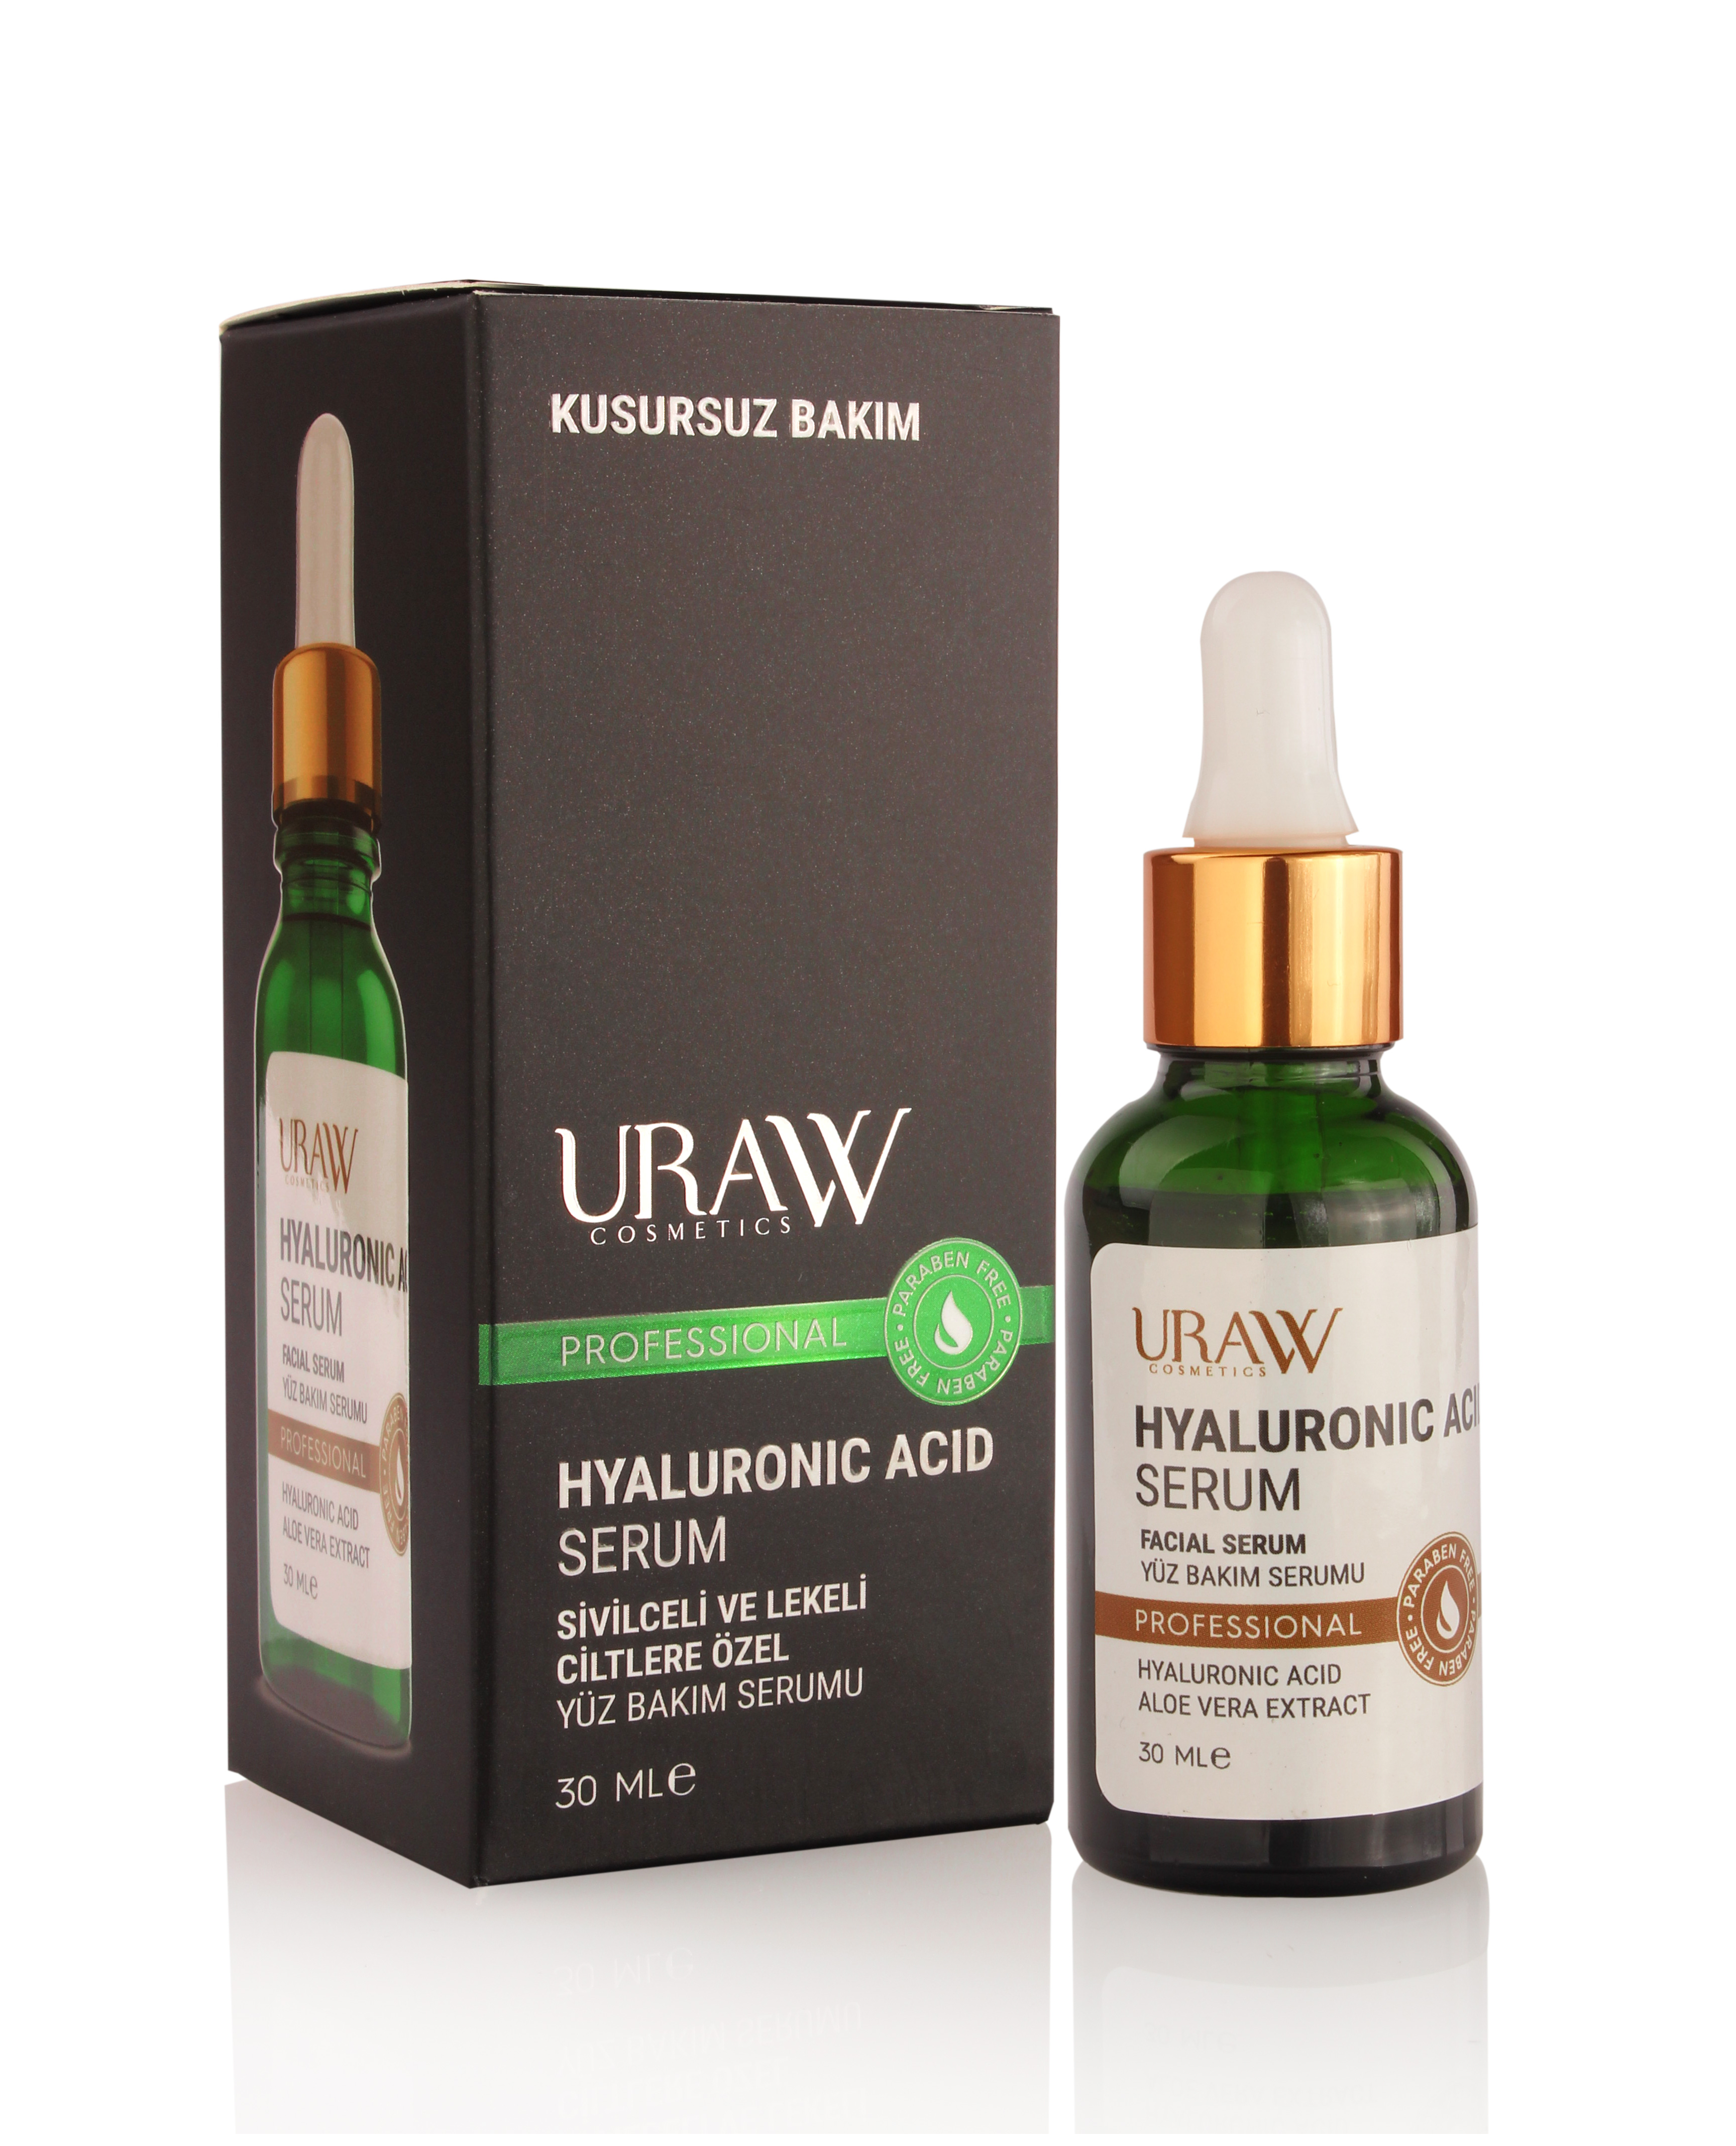 URAW HYALURONİC ACİD SERUM Special Face Care Serum For Spotty And Blemished Skin